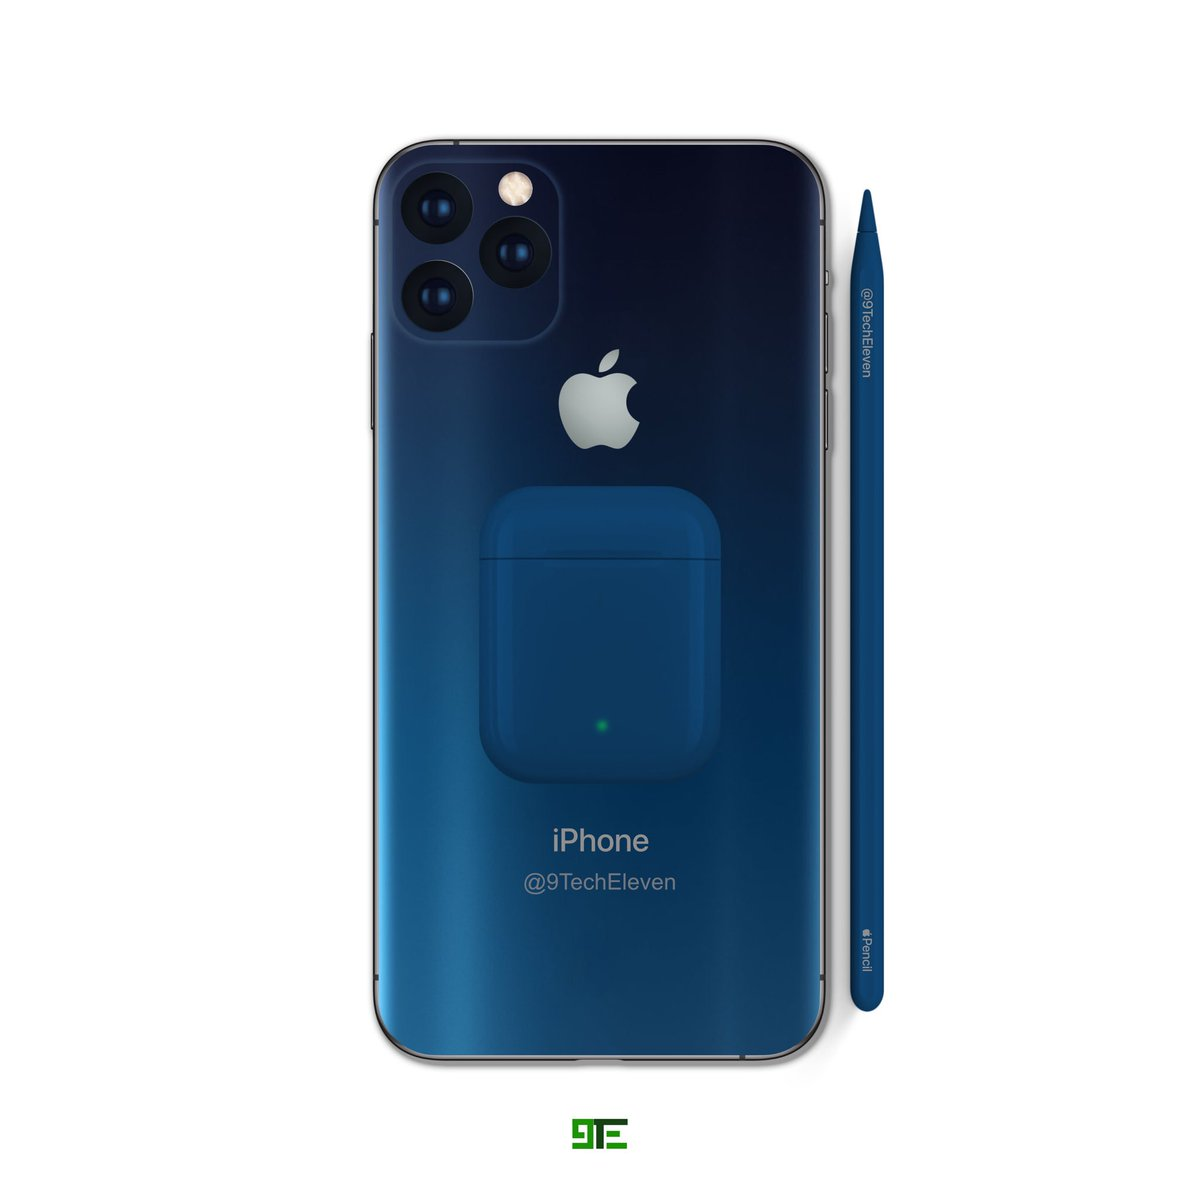 9techeleven On Twitter Iphone 11 Pro In Nebula Blue Airpods And